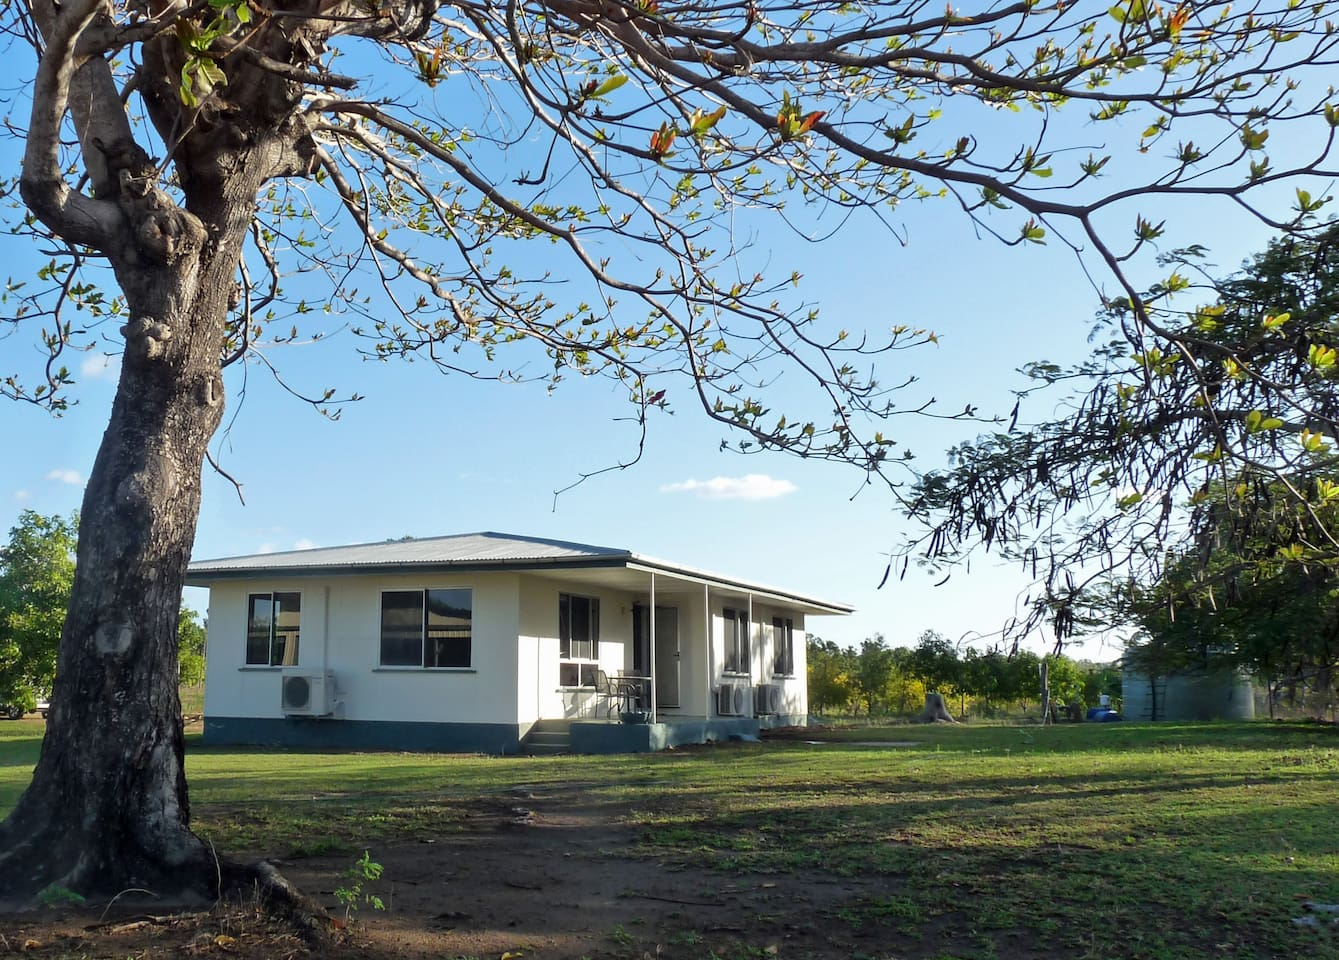 The Elliot River Retreat is located in a peaceful rural riverside location.